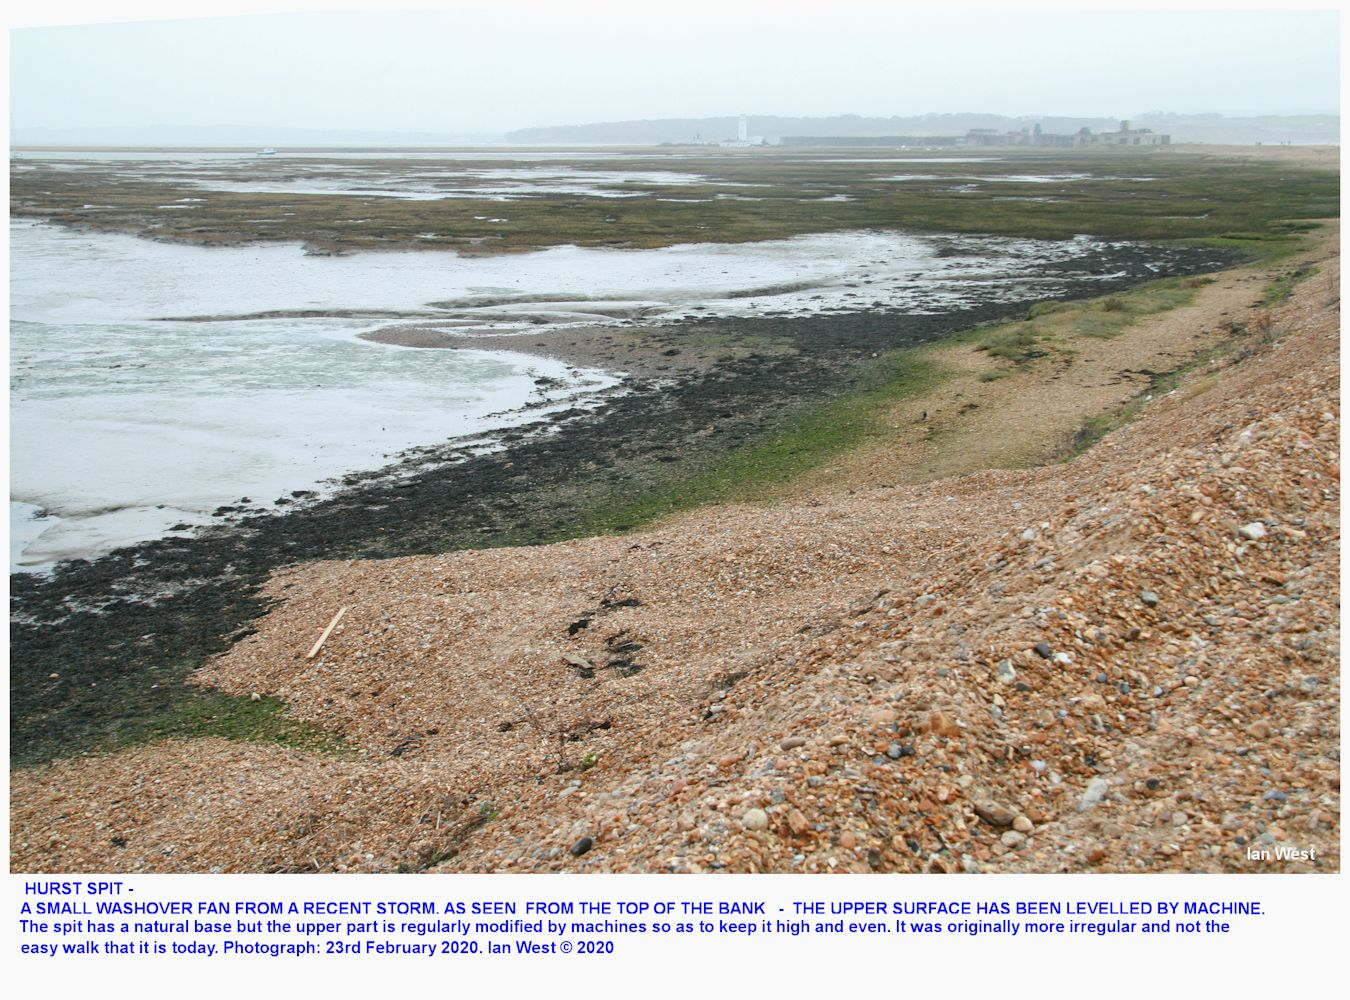 A small washover fan on Hurst Spit, resulting from a storm wave that has been high enough so as to wash shingle down towards the marshes at the back, photograph 23rd February 2020